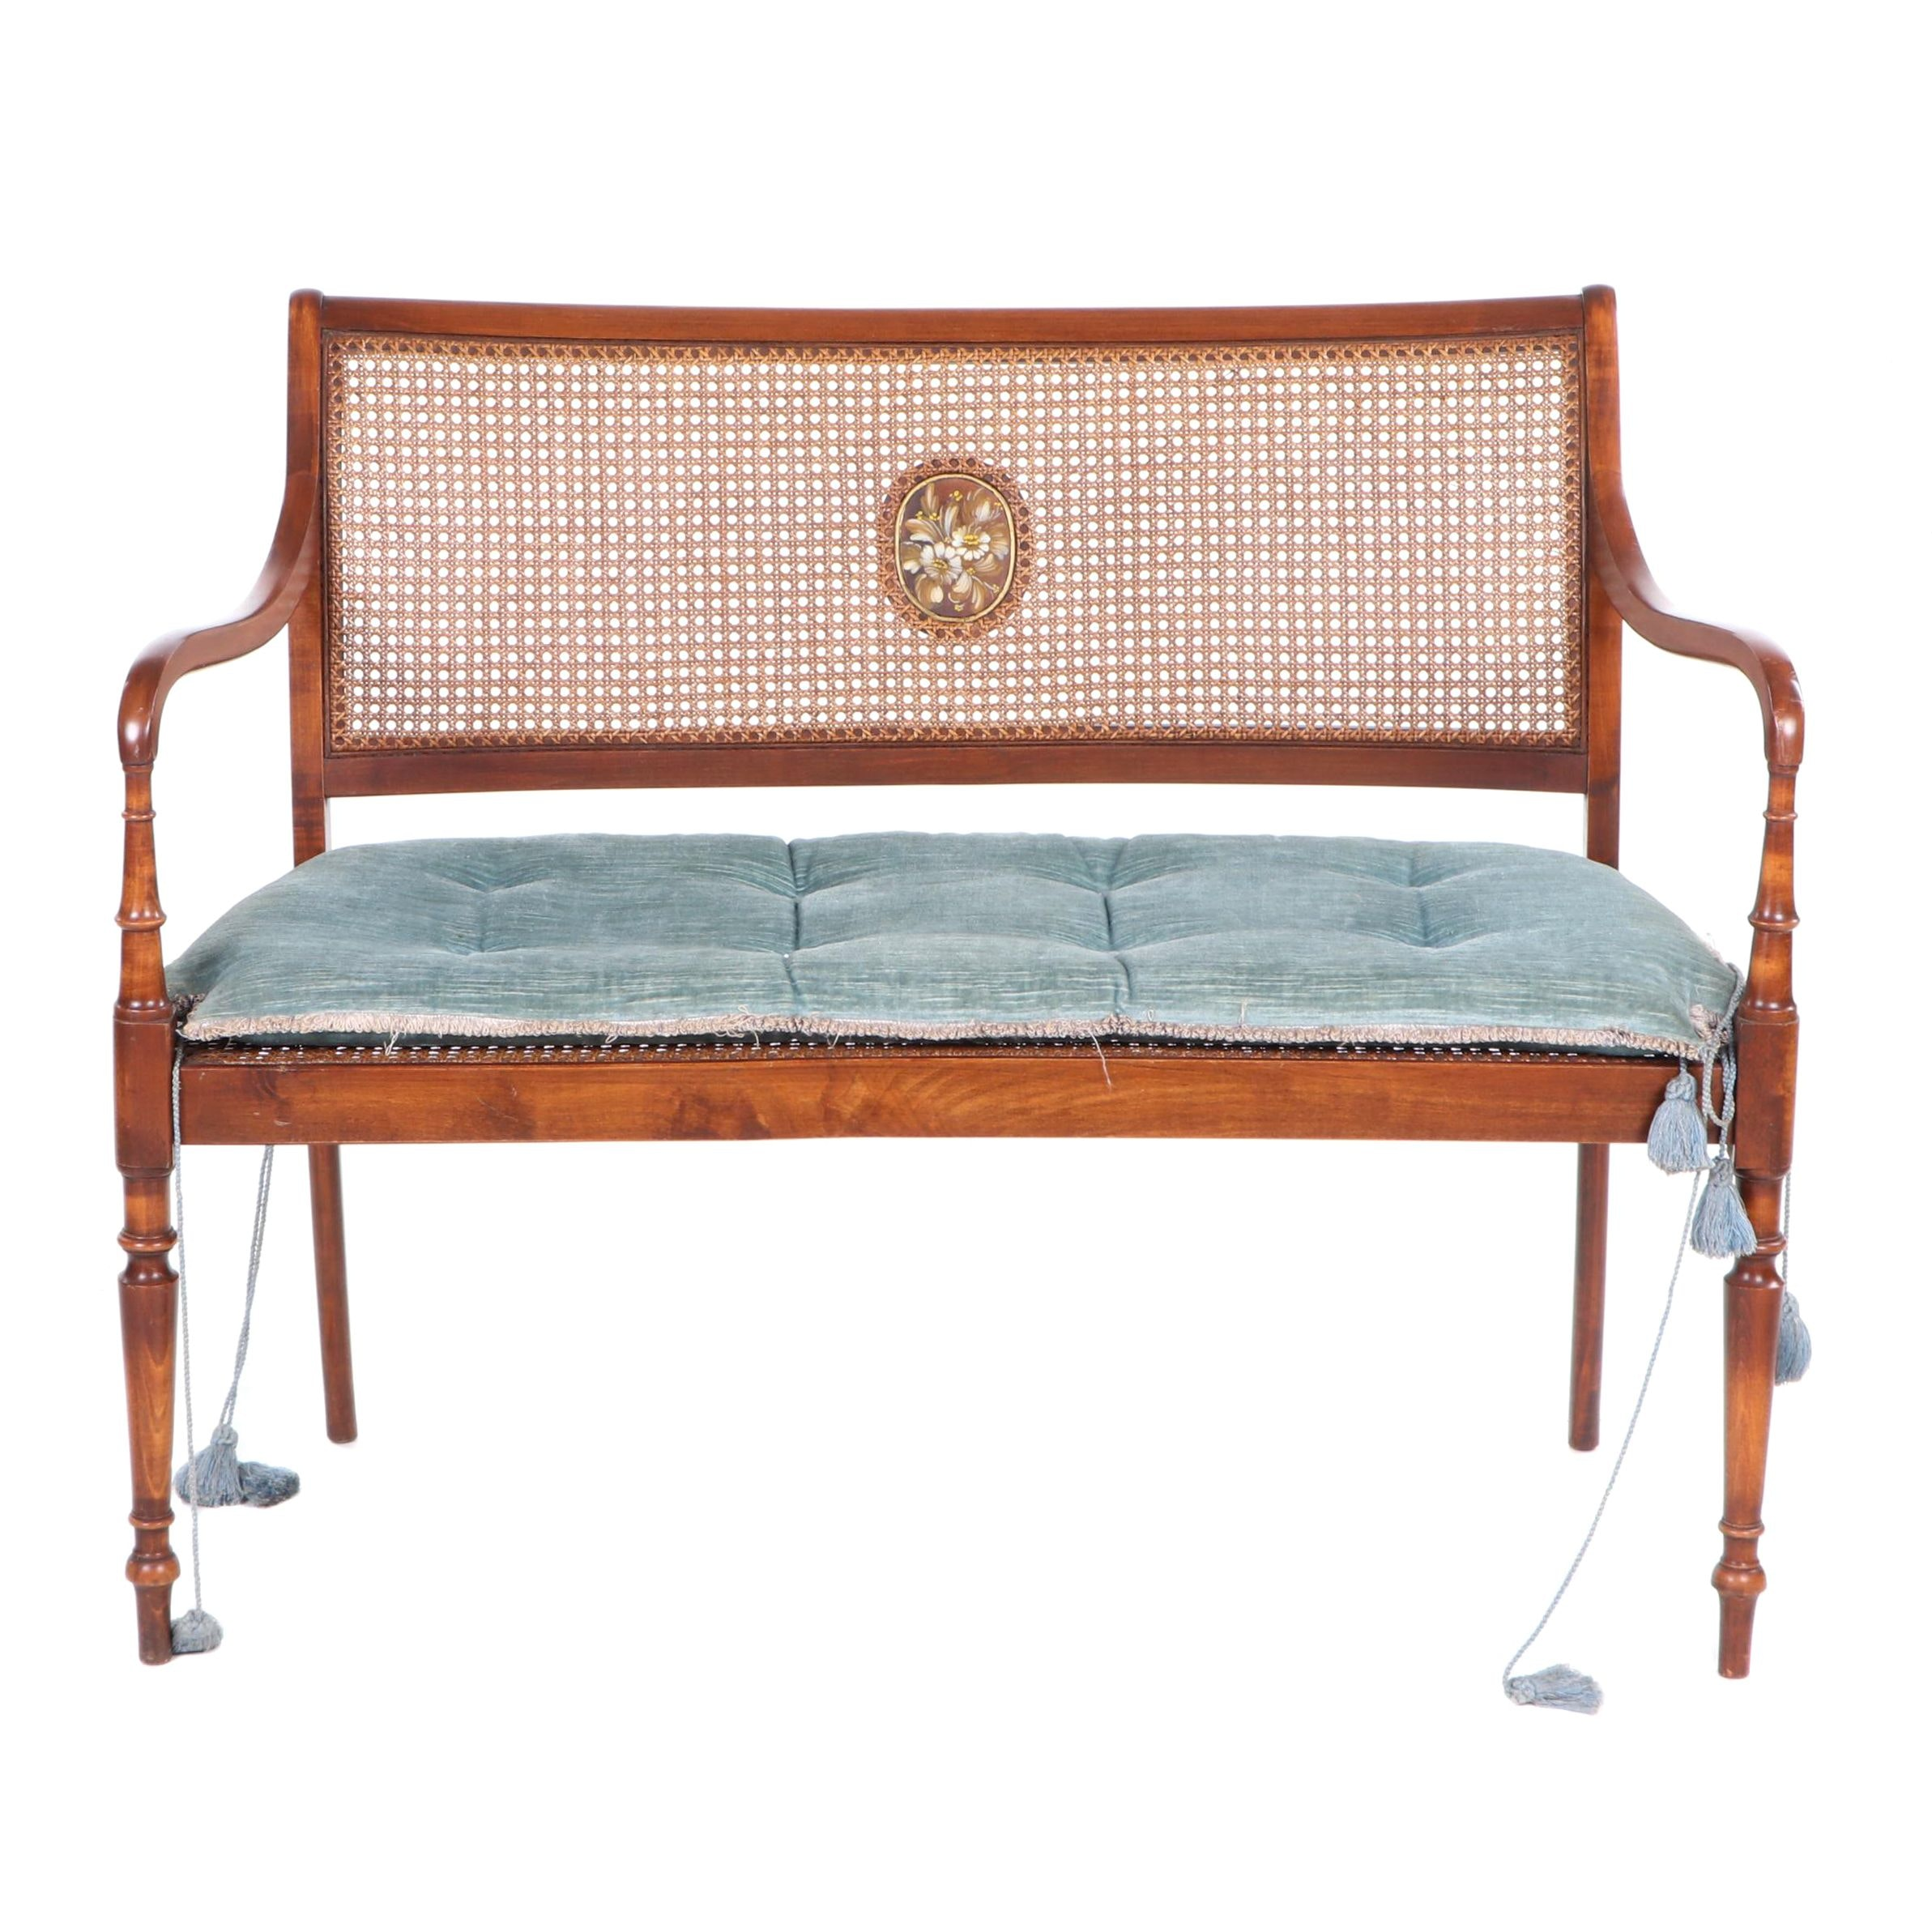 Regency Style Caned Fruitwood Settee with Polychrome Decoration, 20th Century